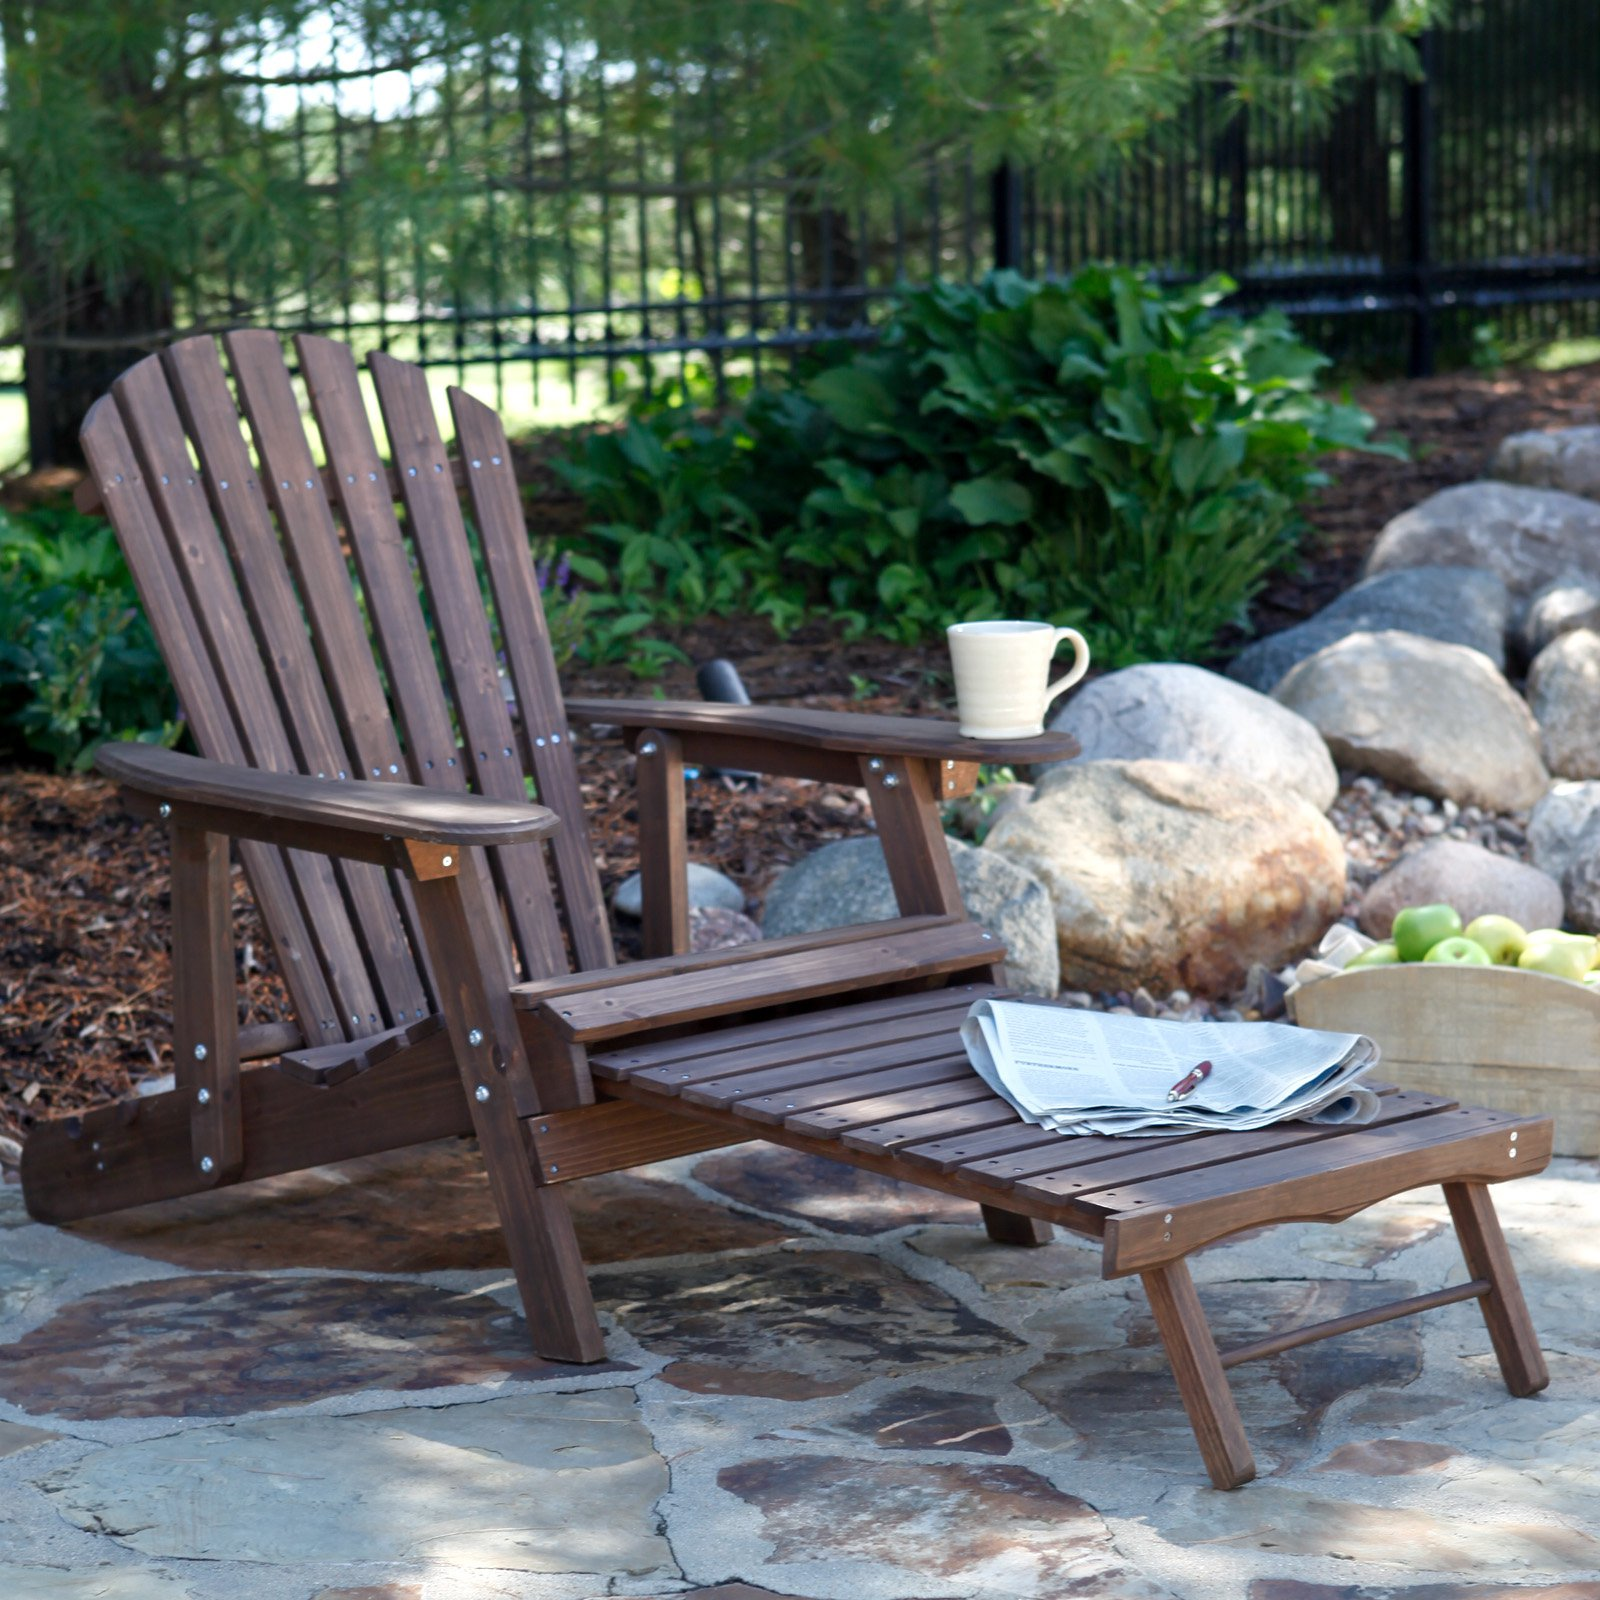 Coral Coast Grand Daddy Oversized Adirondack Chair with Pull out Ottoman - Dark Brown